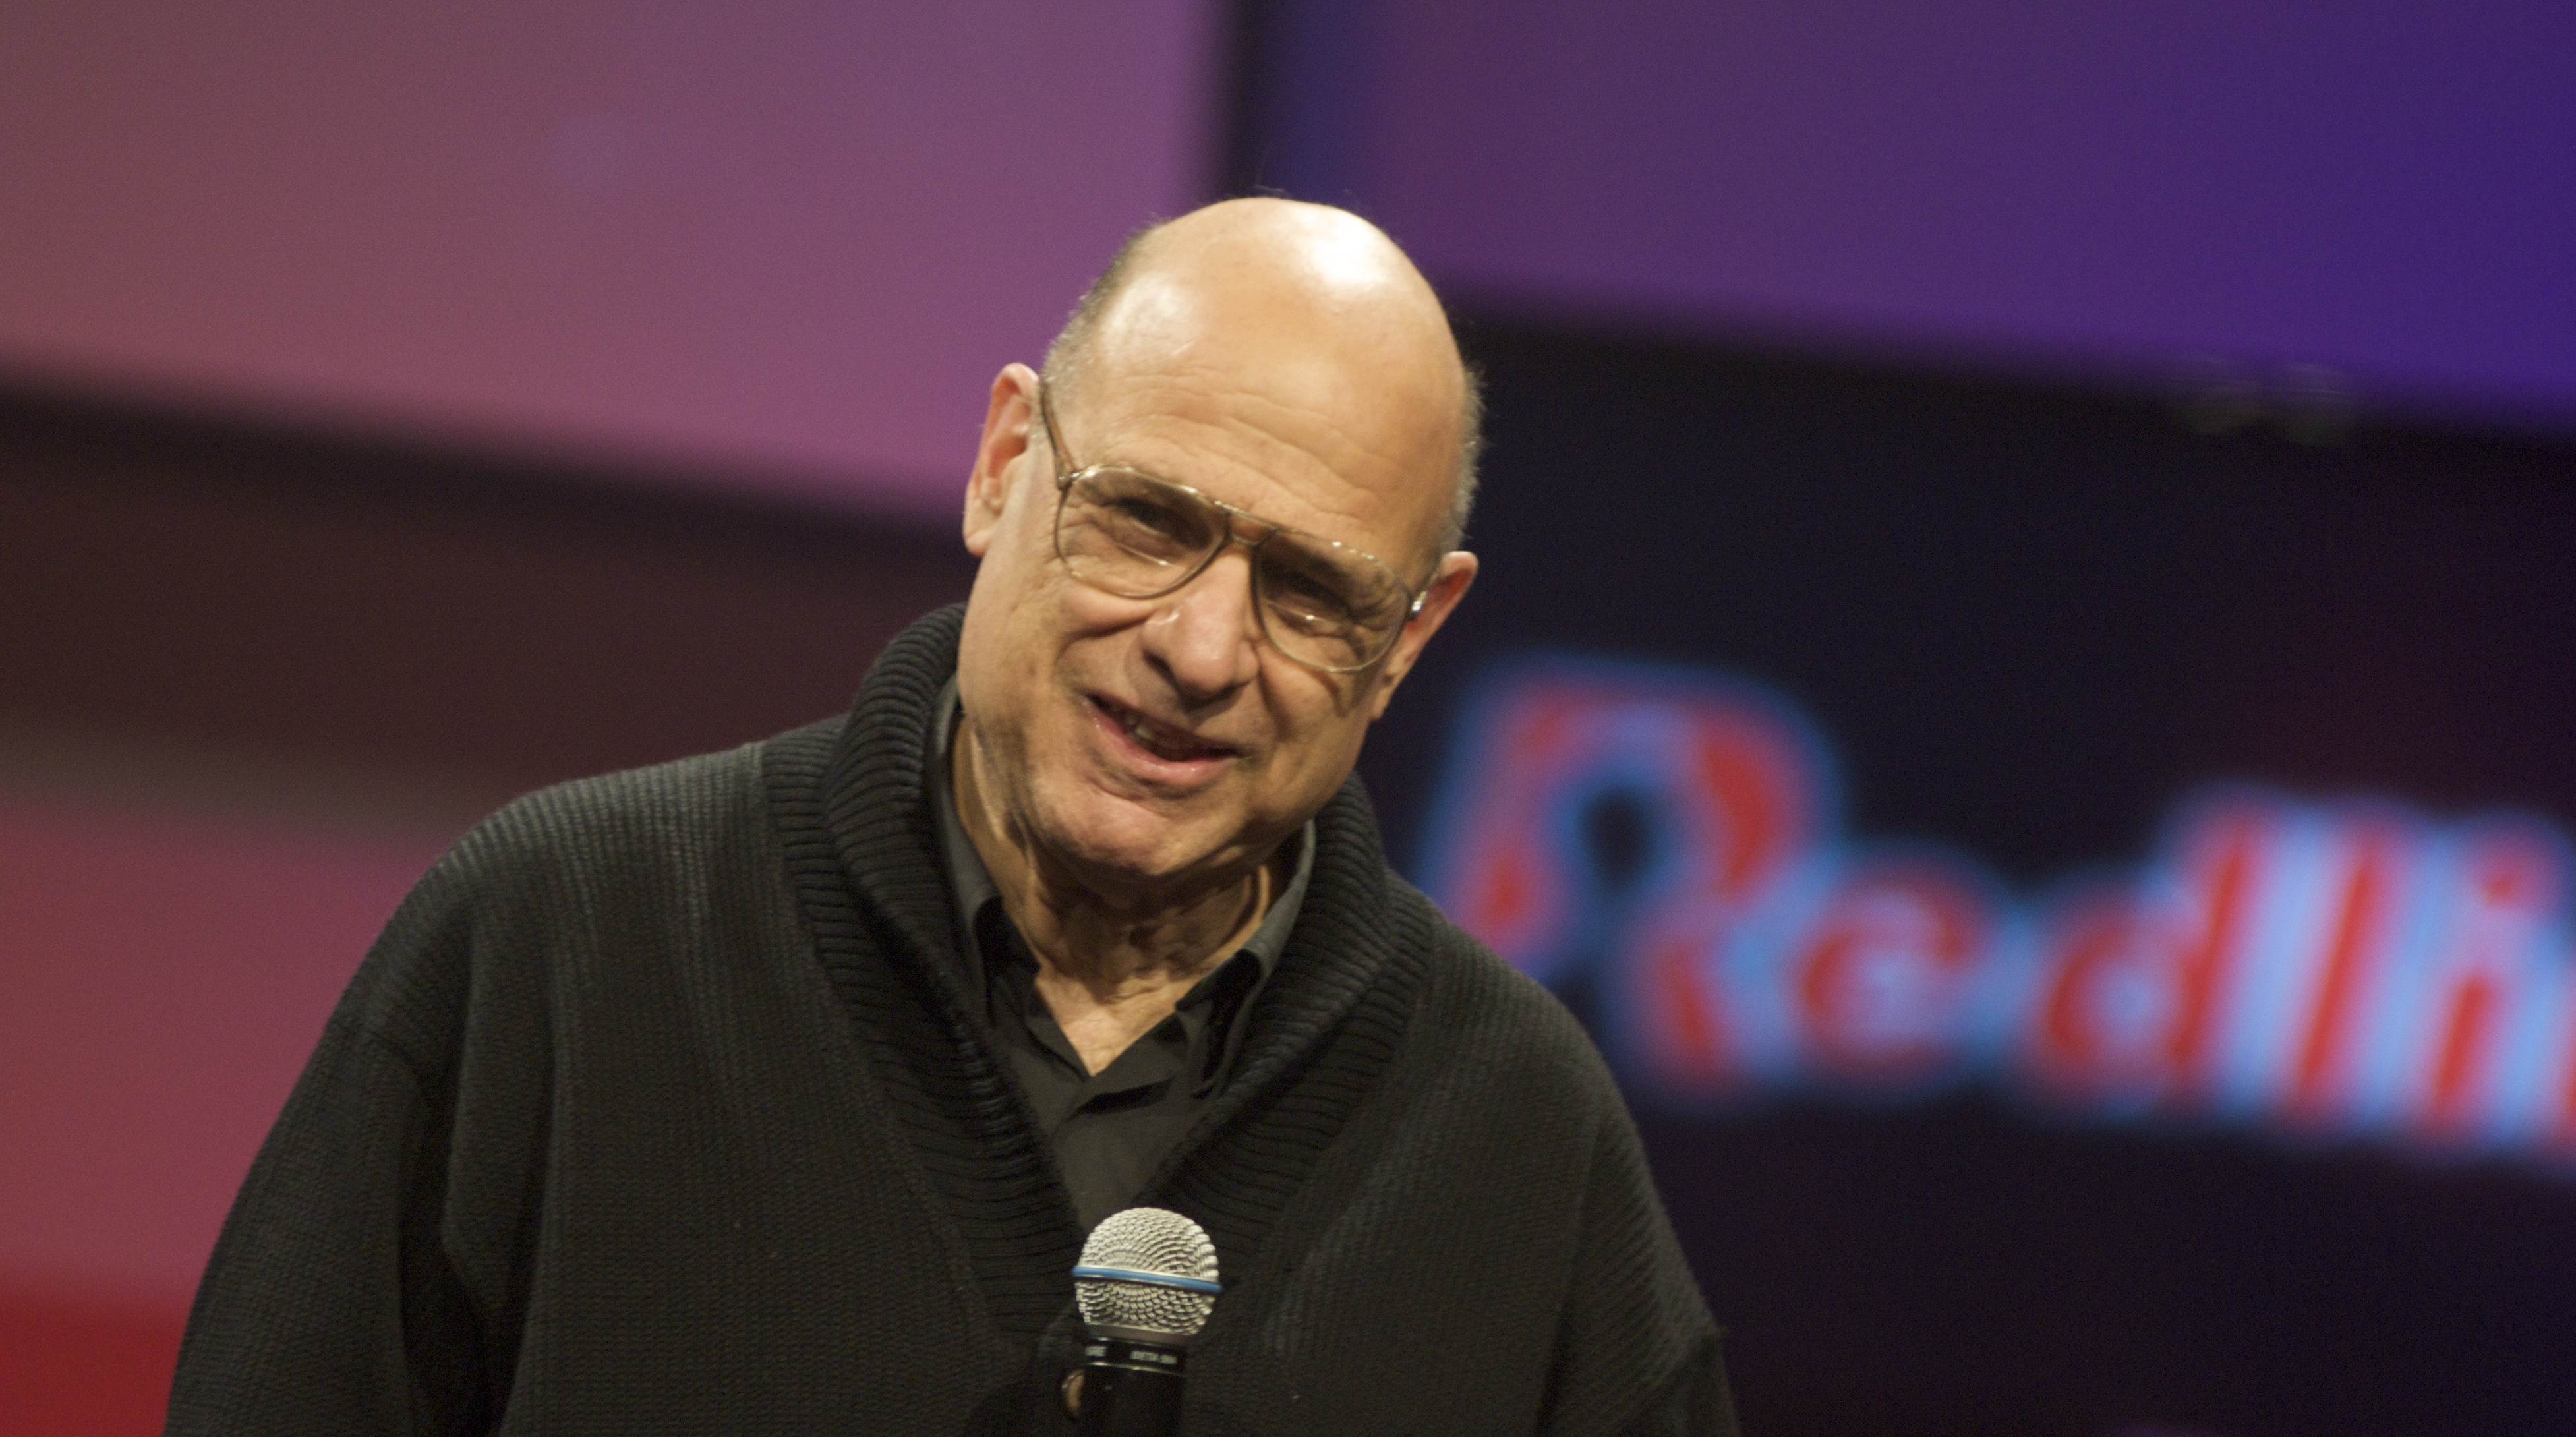 Tony Campolo must put public repentant action behind new, gay-affirming words